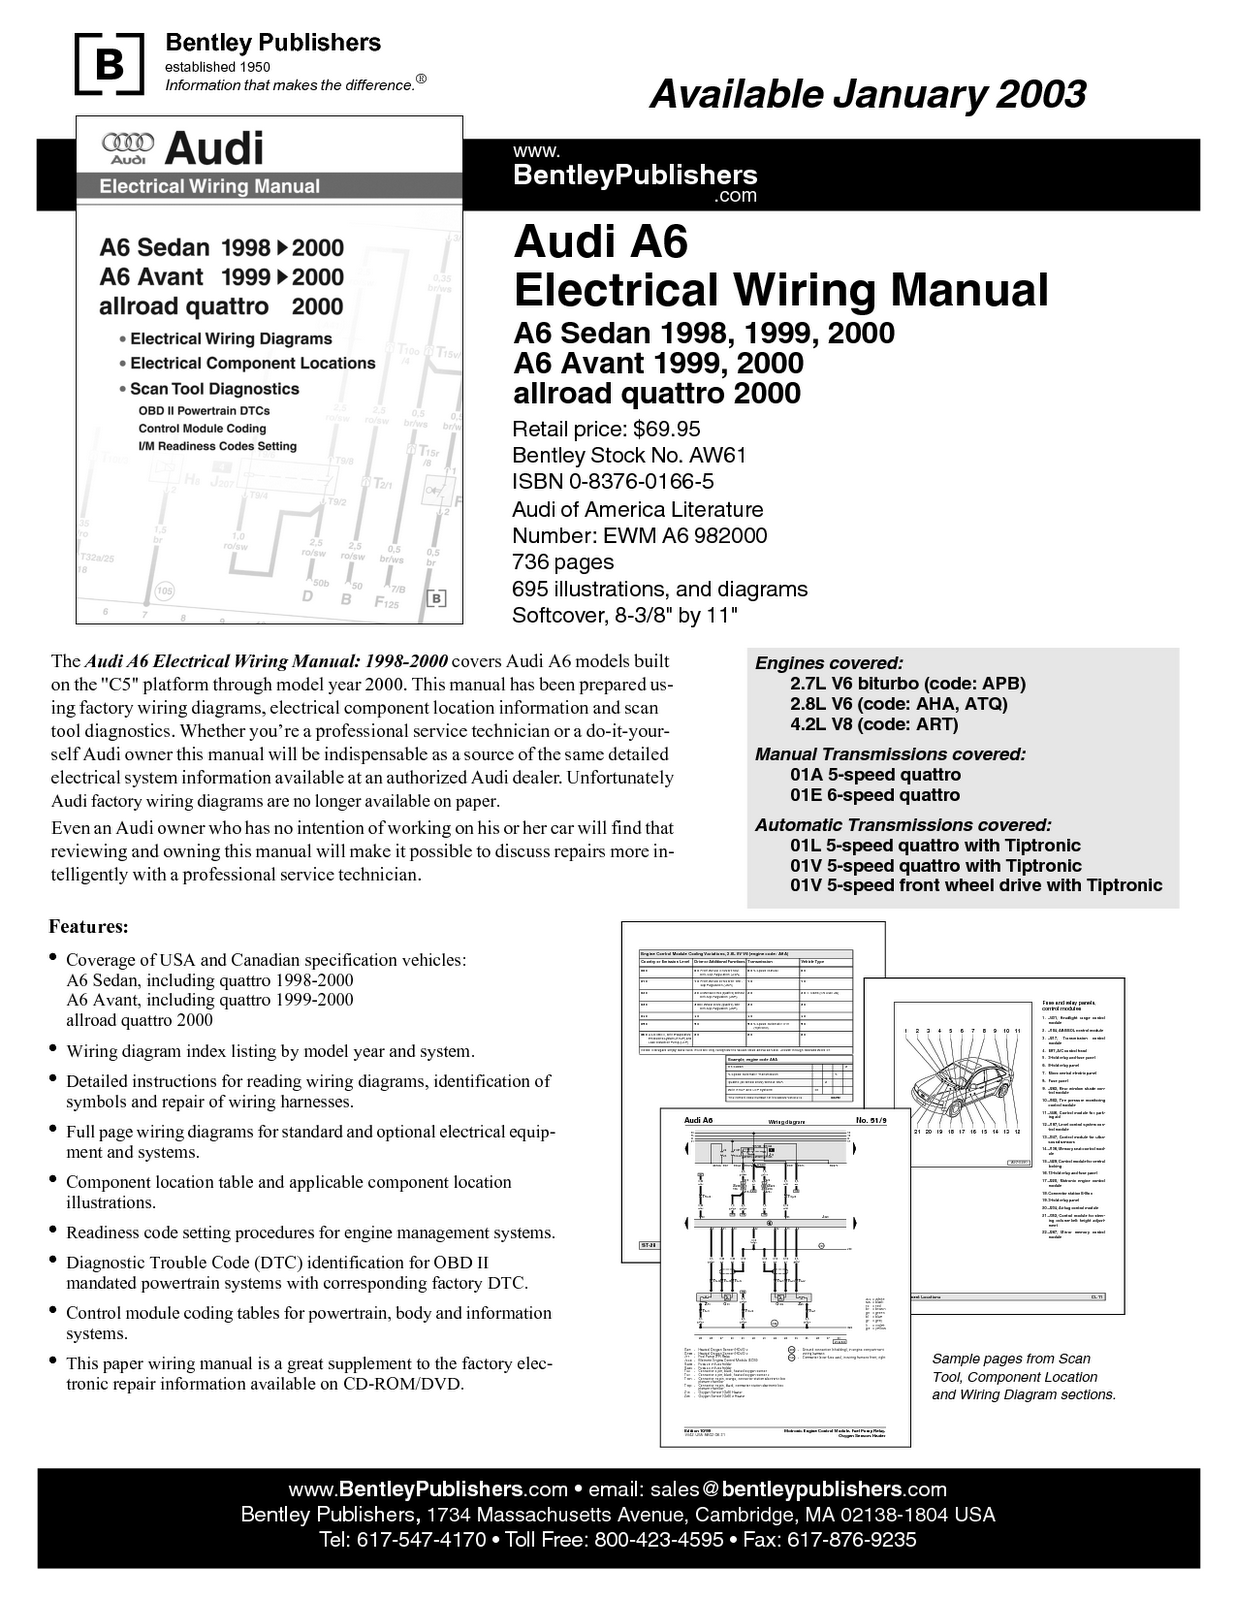 2005 audi a6 wiring diagram electrical wiring manual 2003 audi a6 | free online manual audi a6 wiring diagrams free